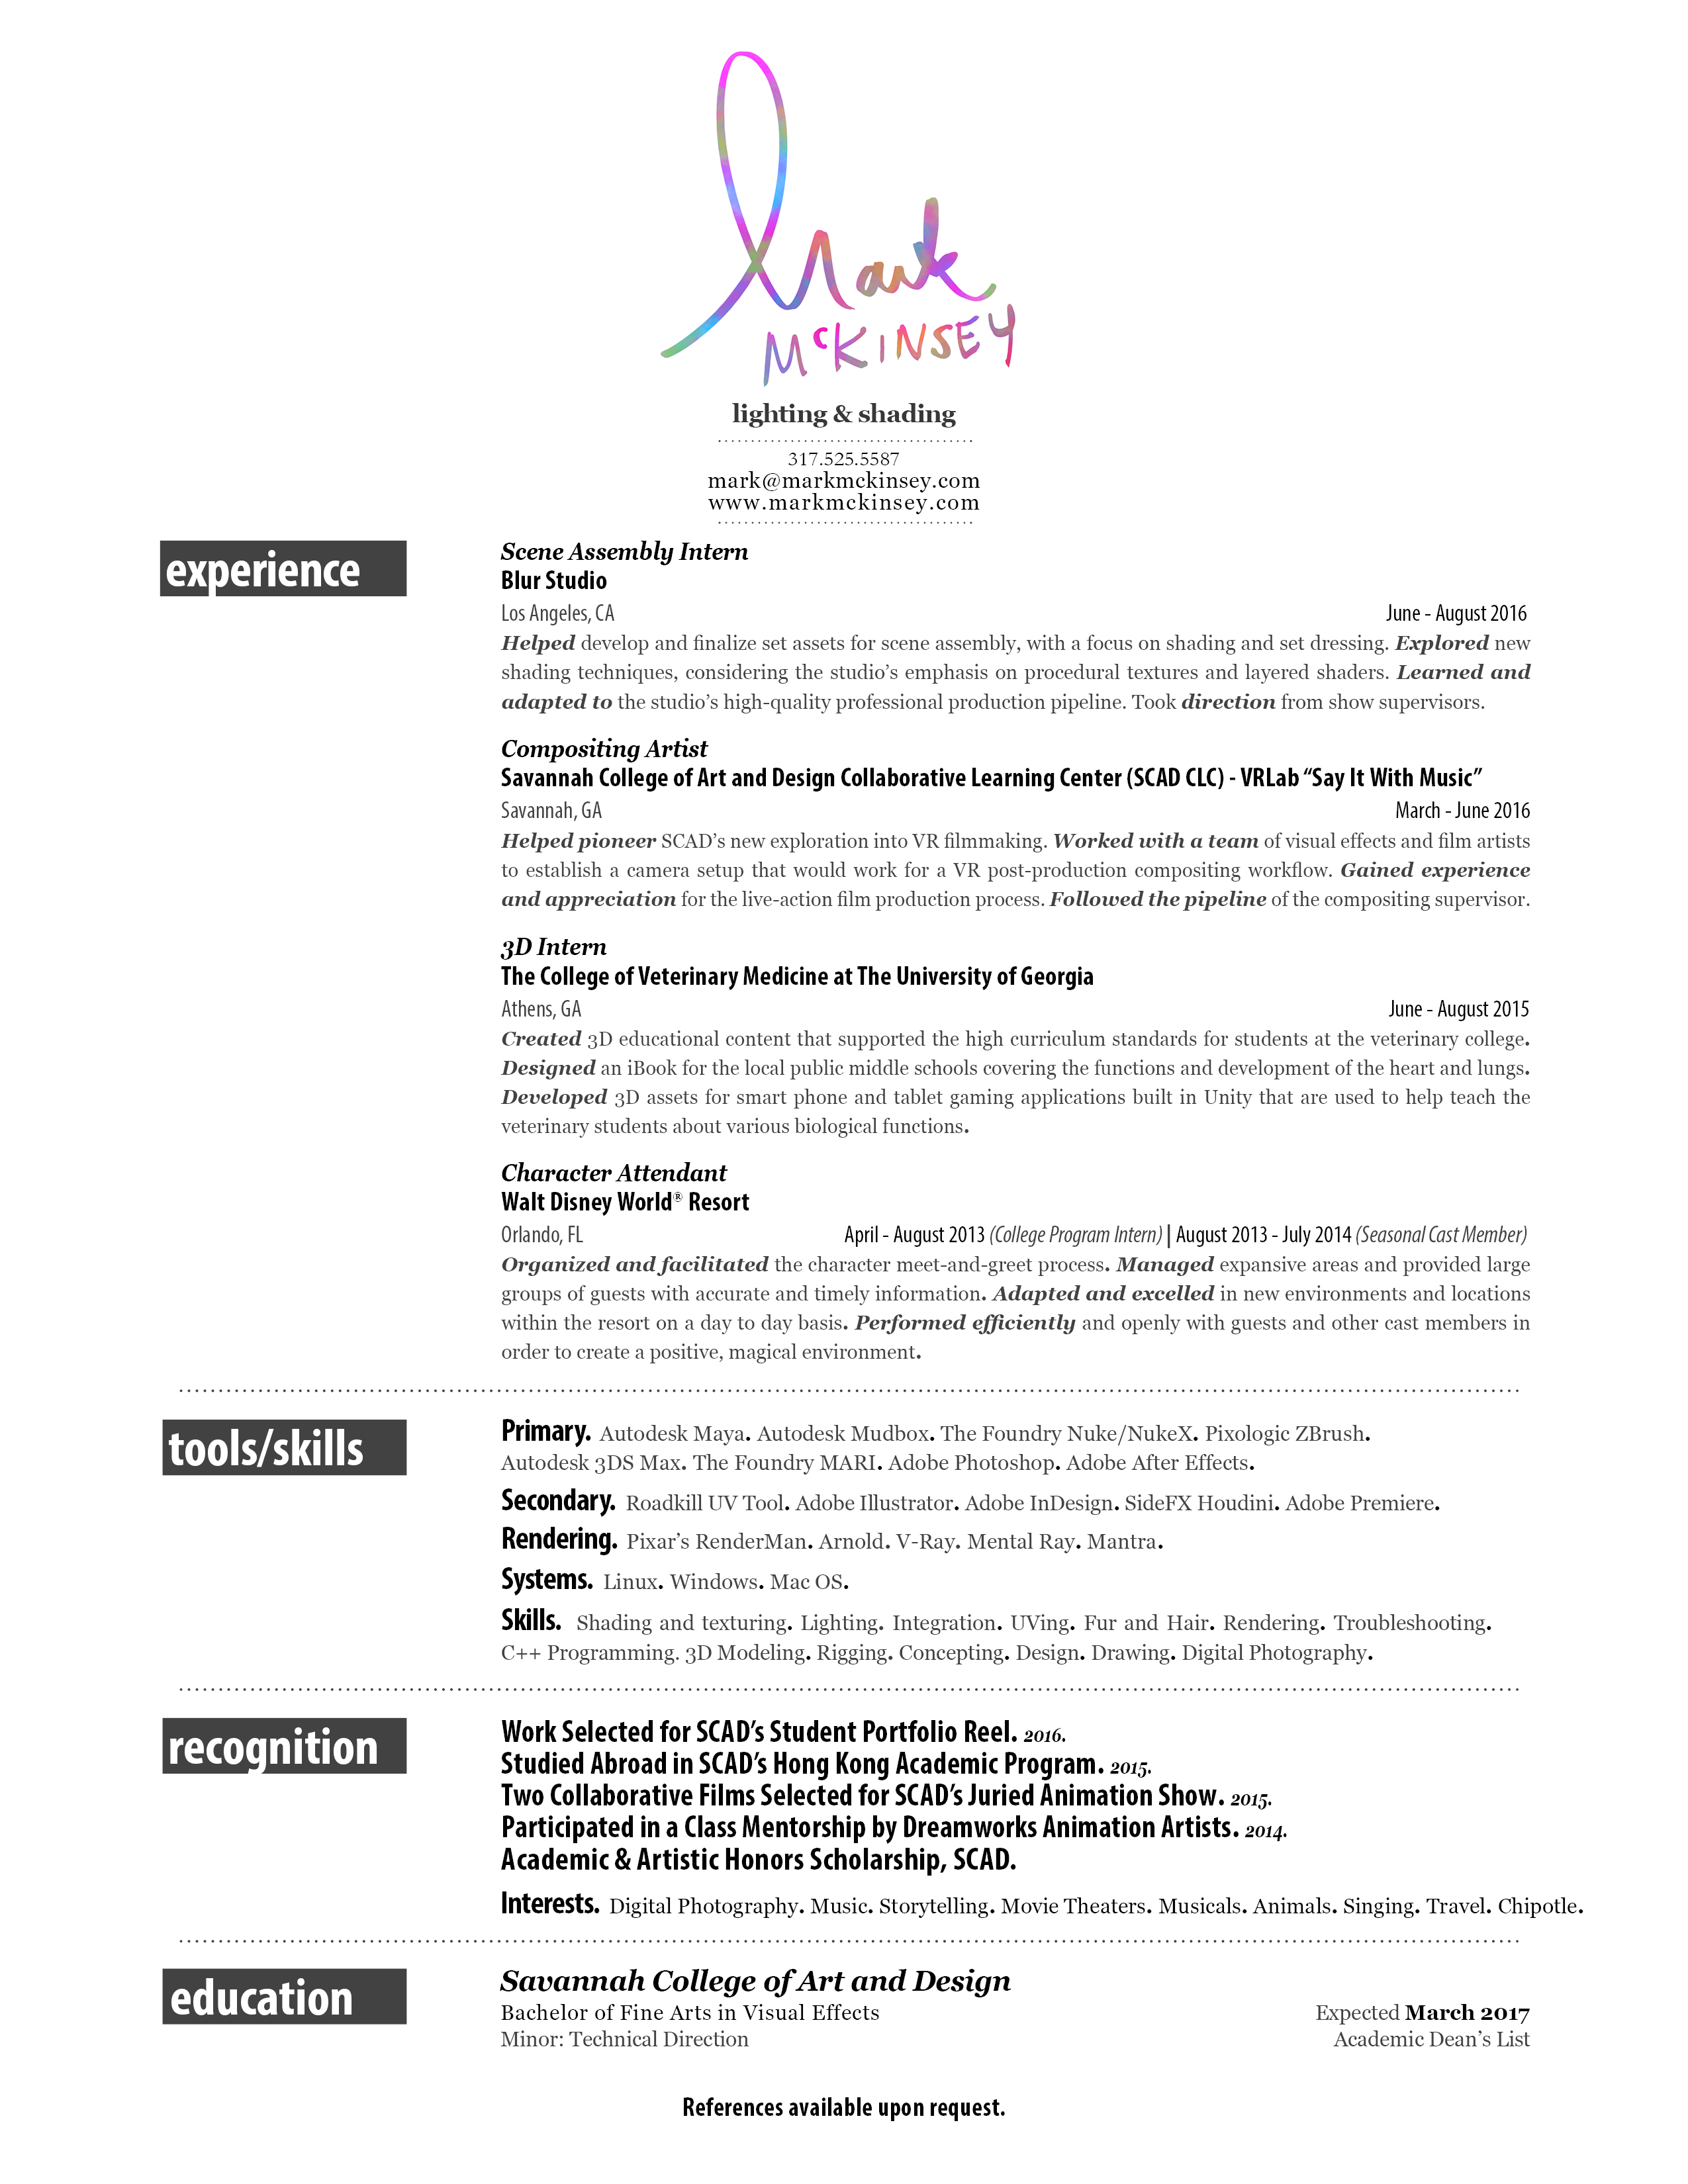 3D Artist cover letter 3 templates looking for work